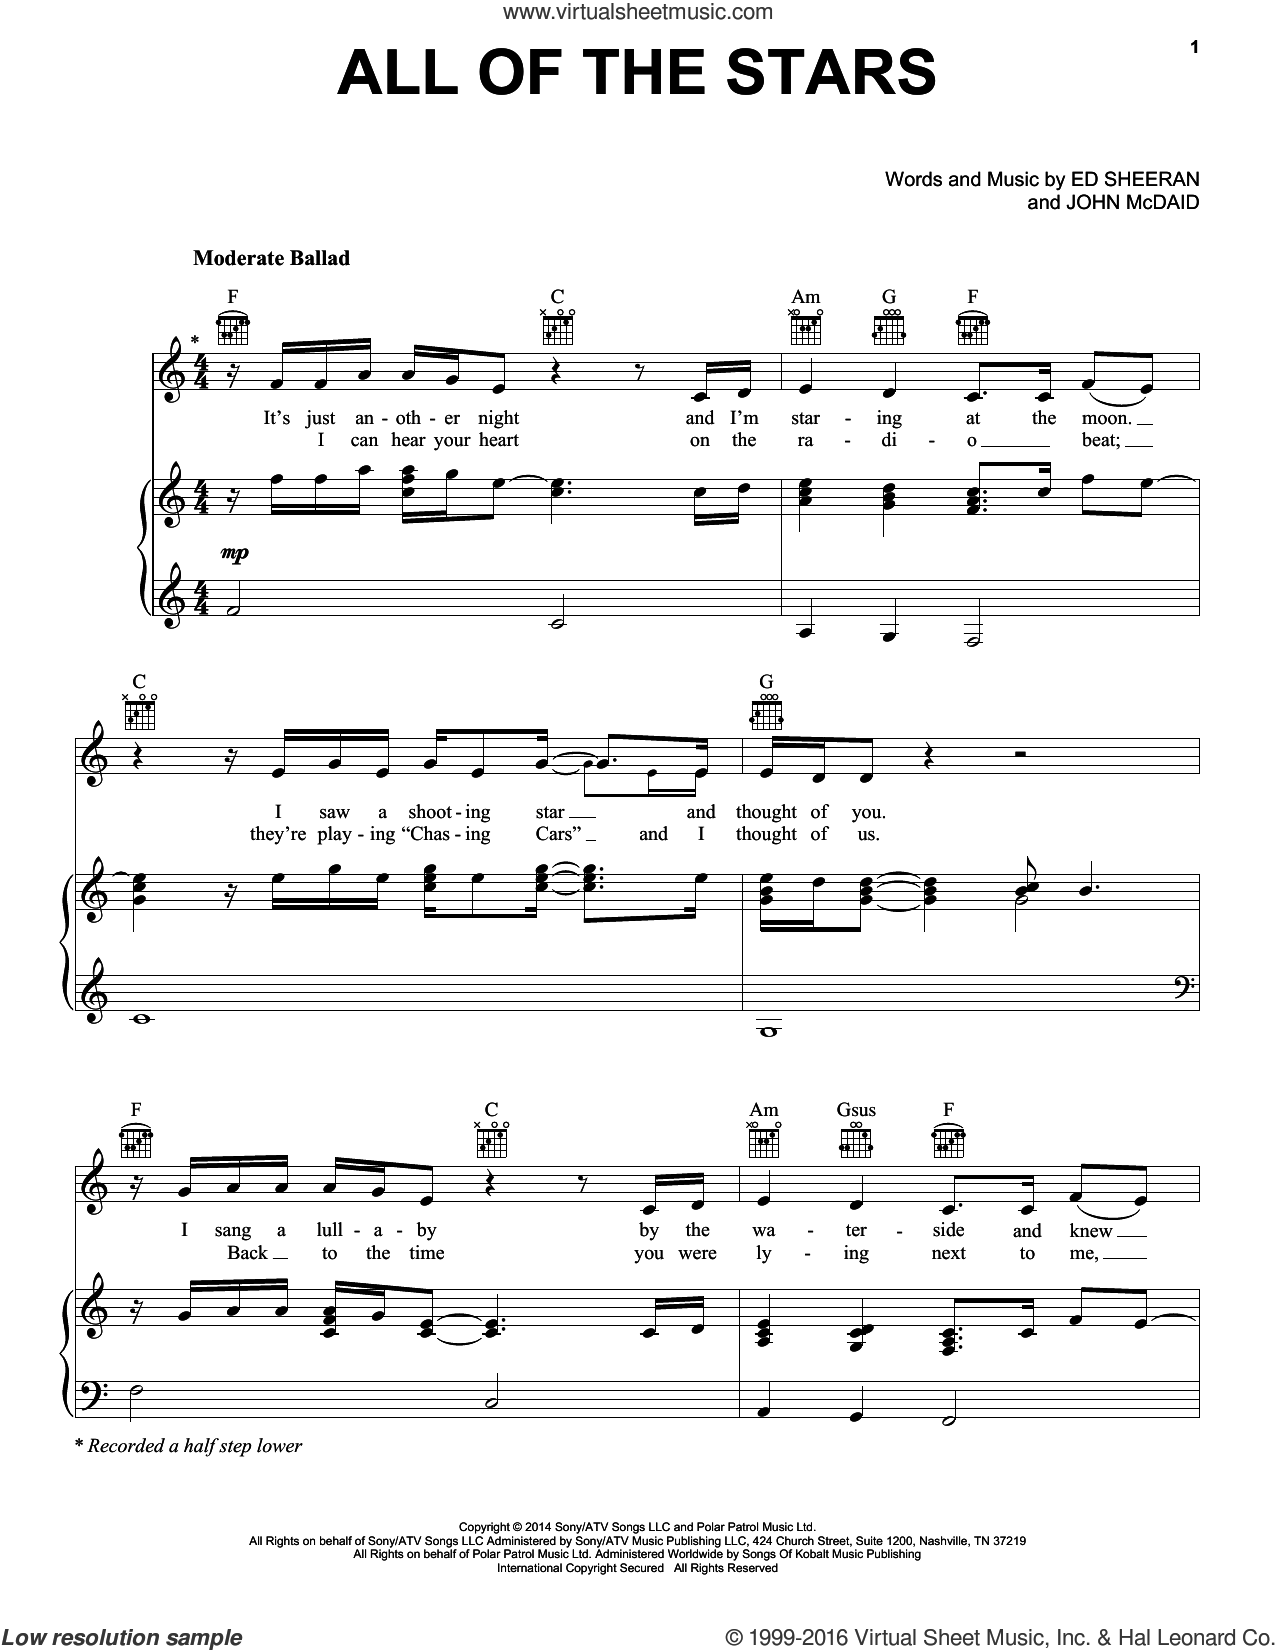 All Of The Stars sheet music for voice, piano or guitar by Ed Sheeran and John McDaid, intermediate skill level